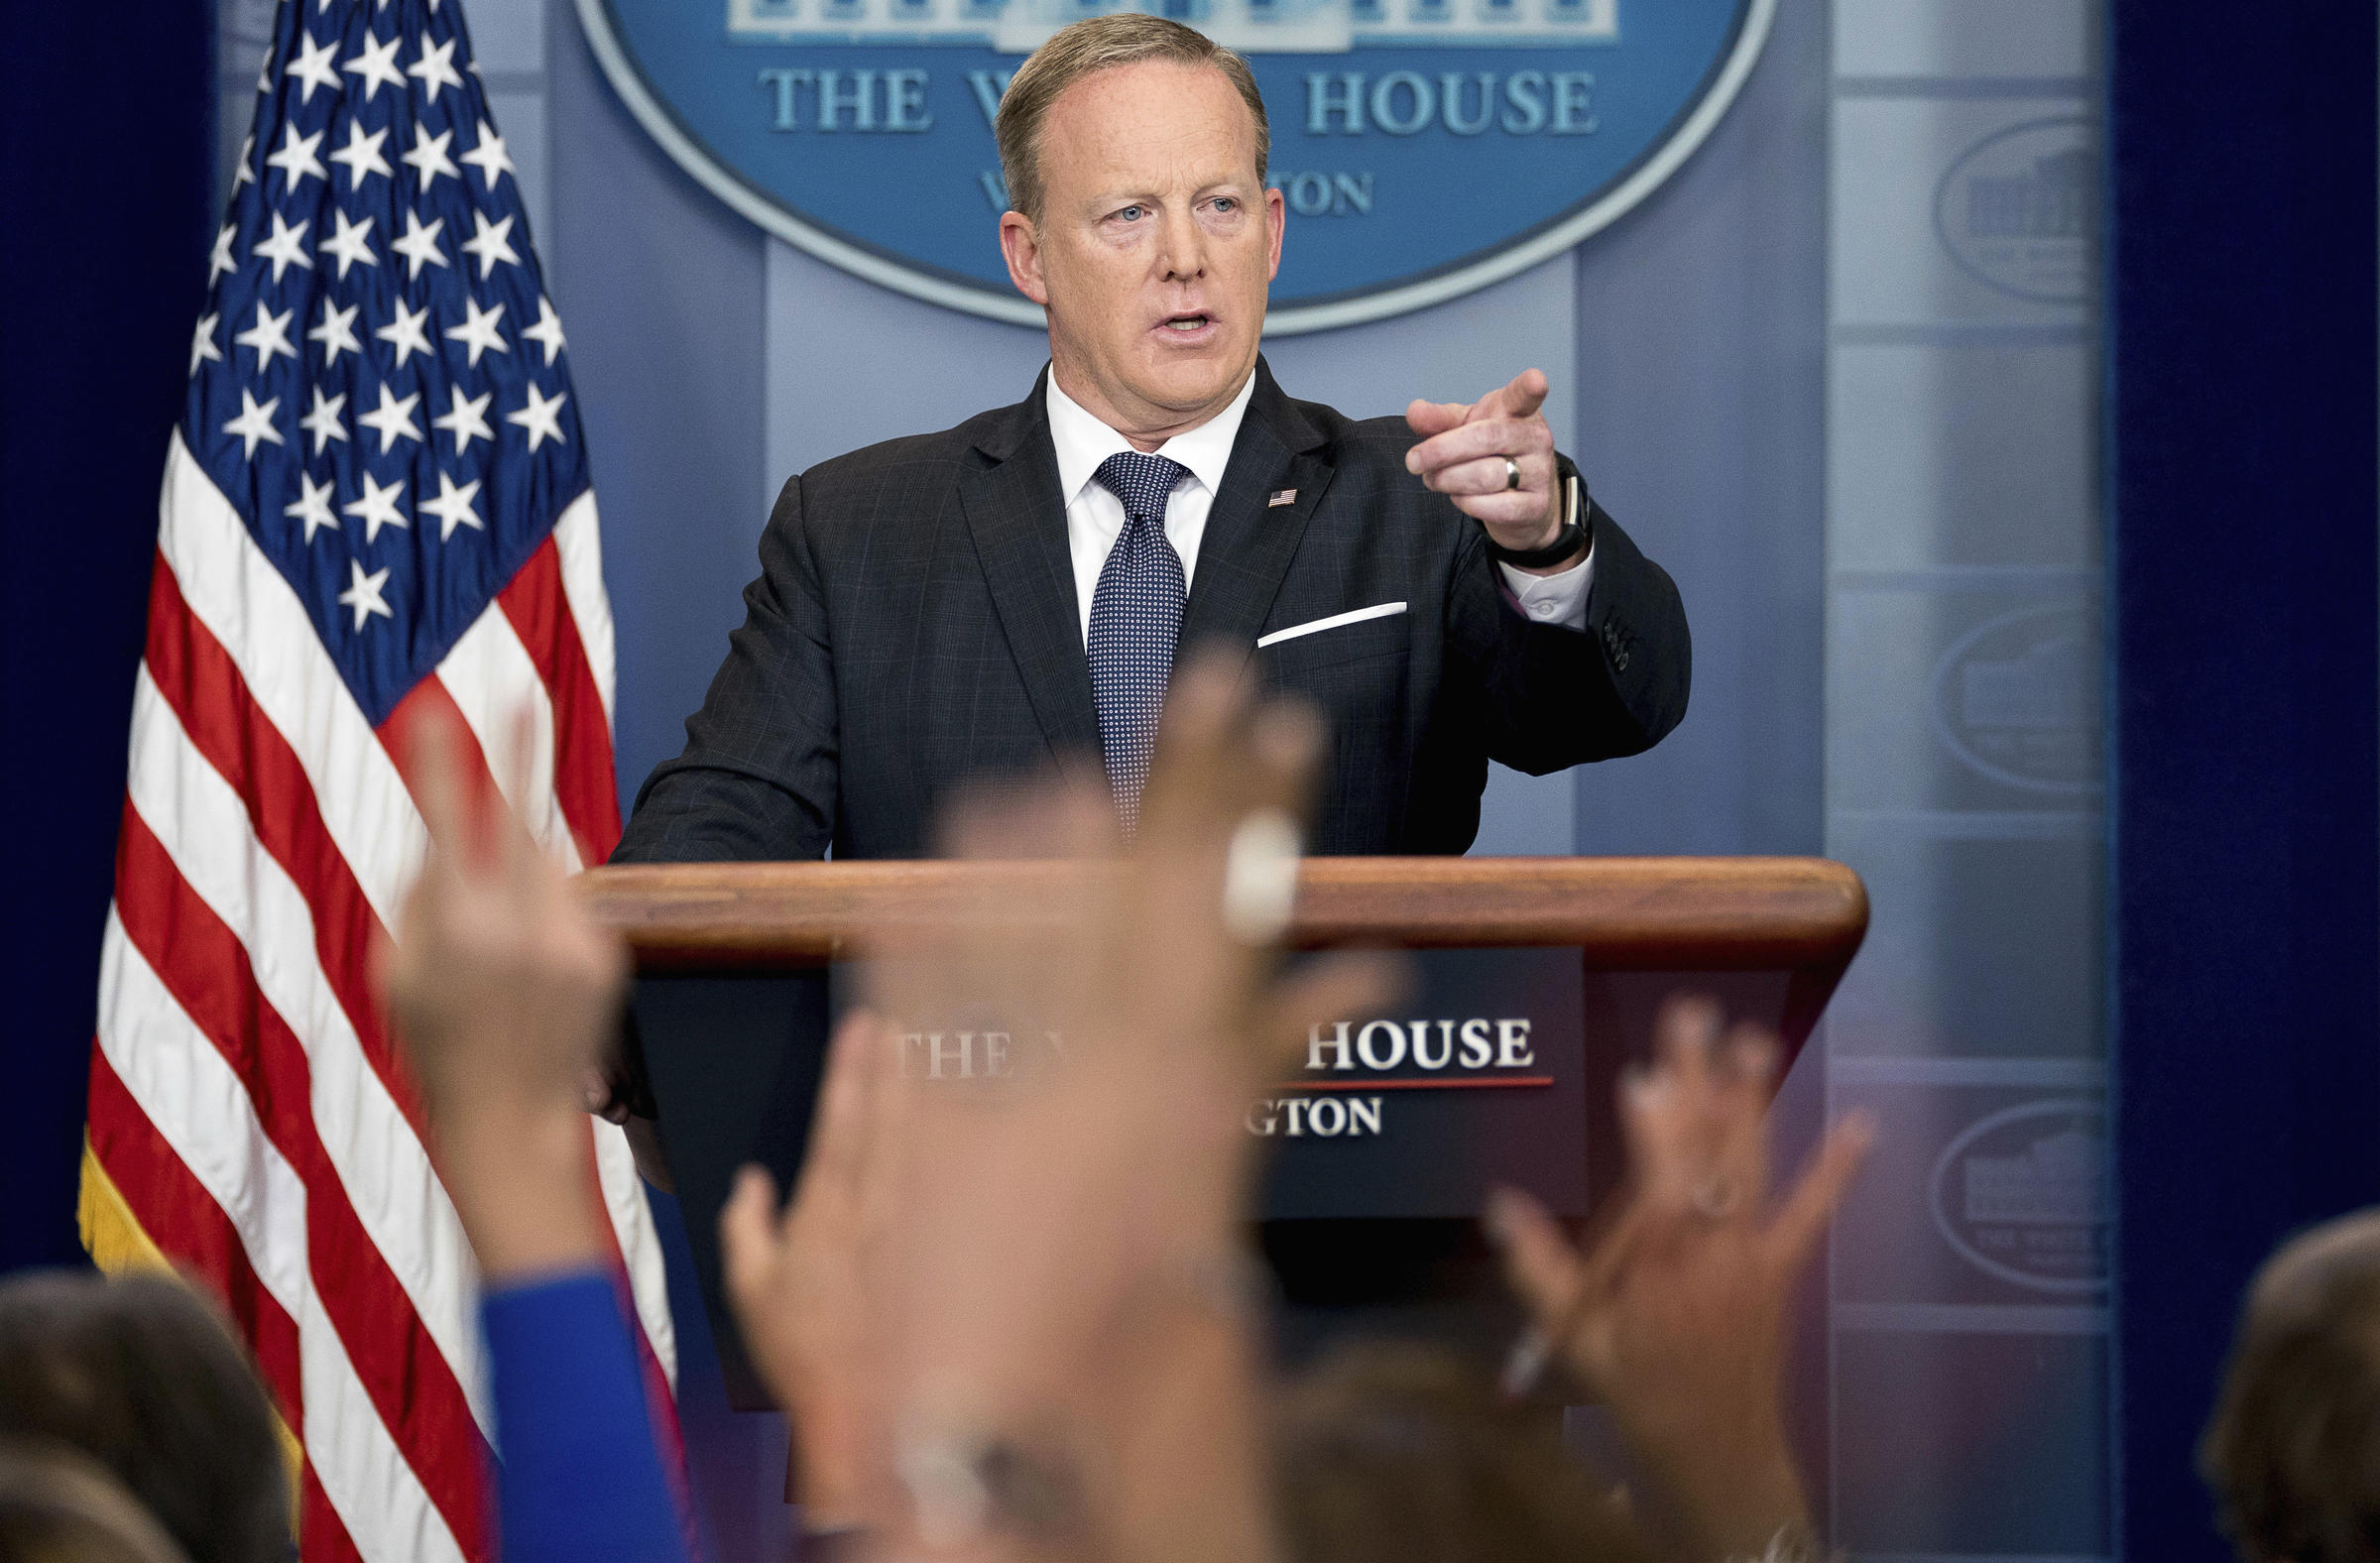 watch: spicer responds to kushner report, clashes with reporters